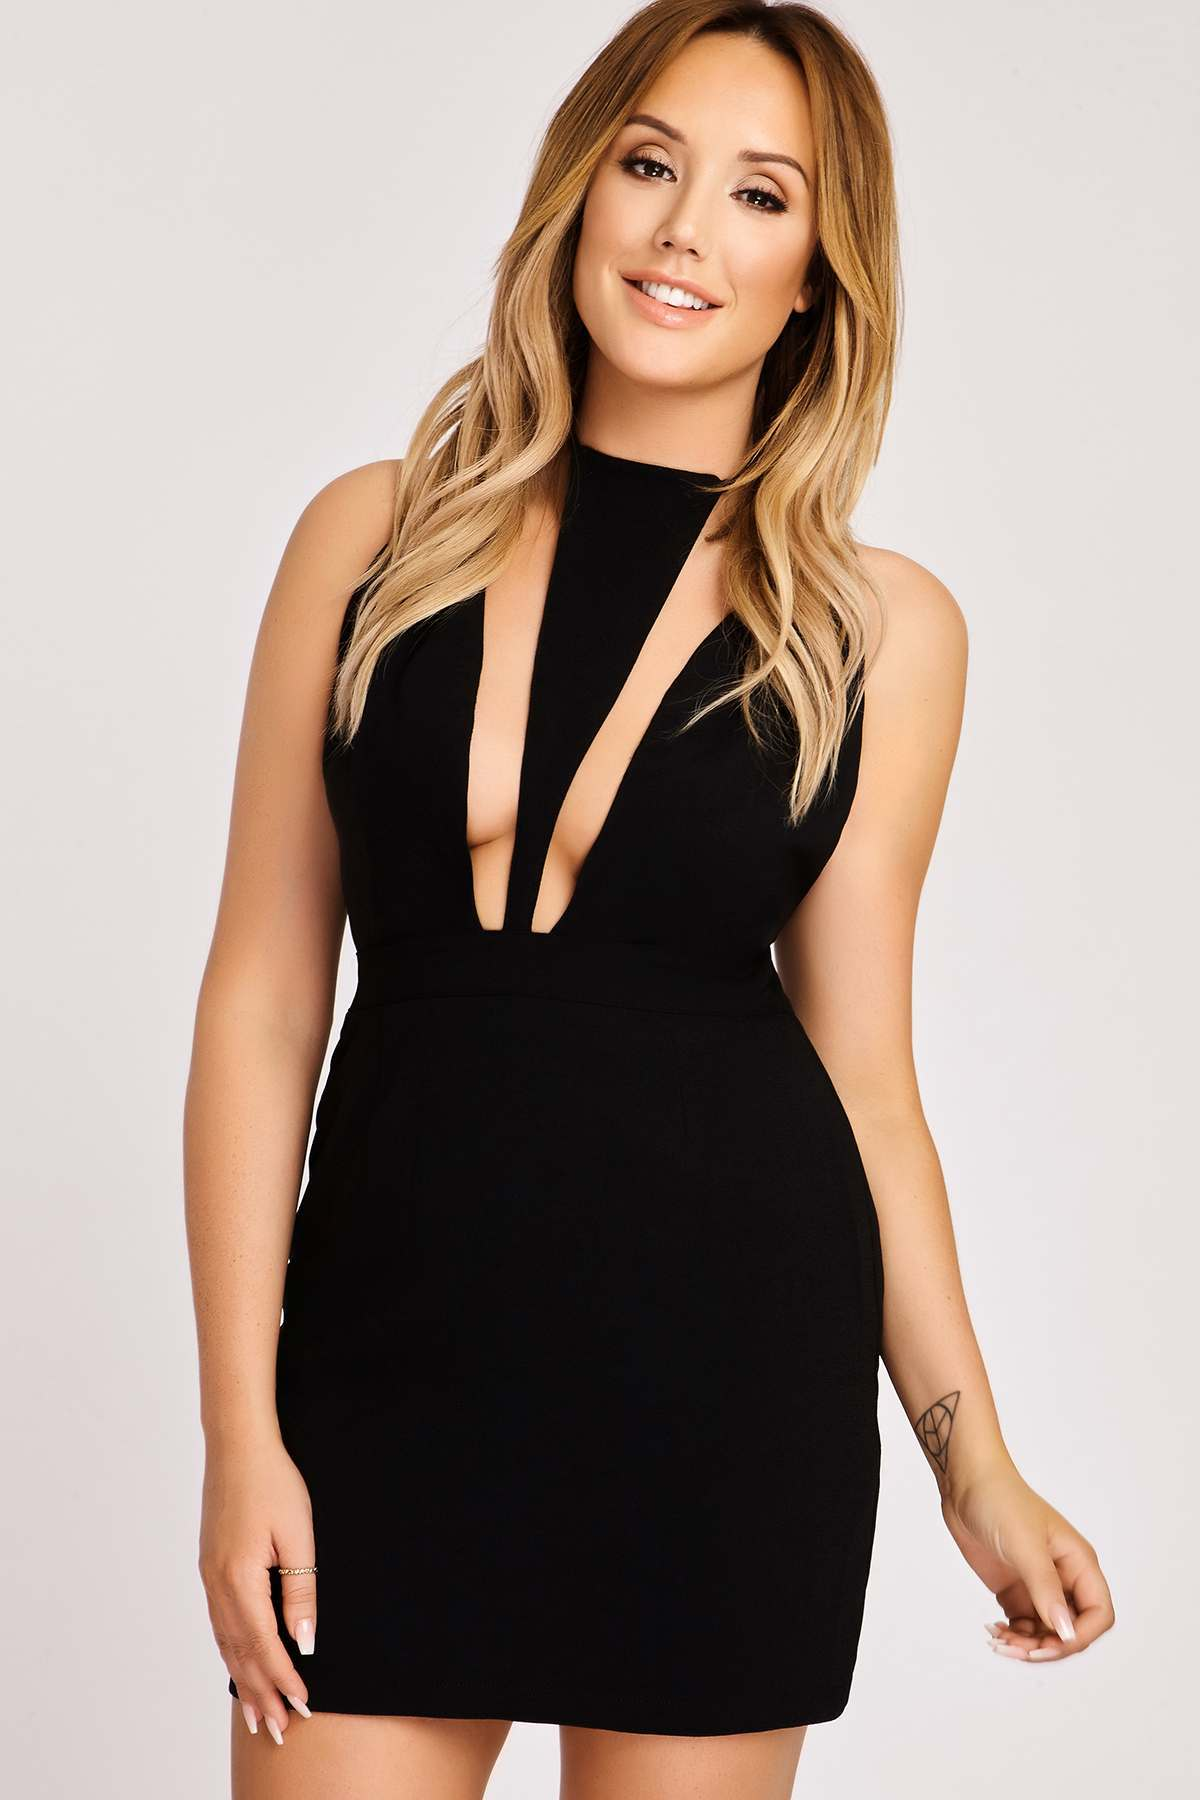 Black Dresses  Charlotte Crosby Black Harness Bodycon Dress